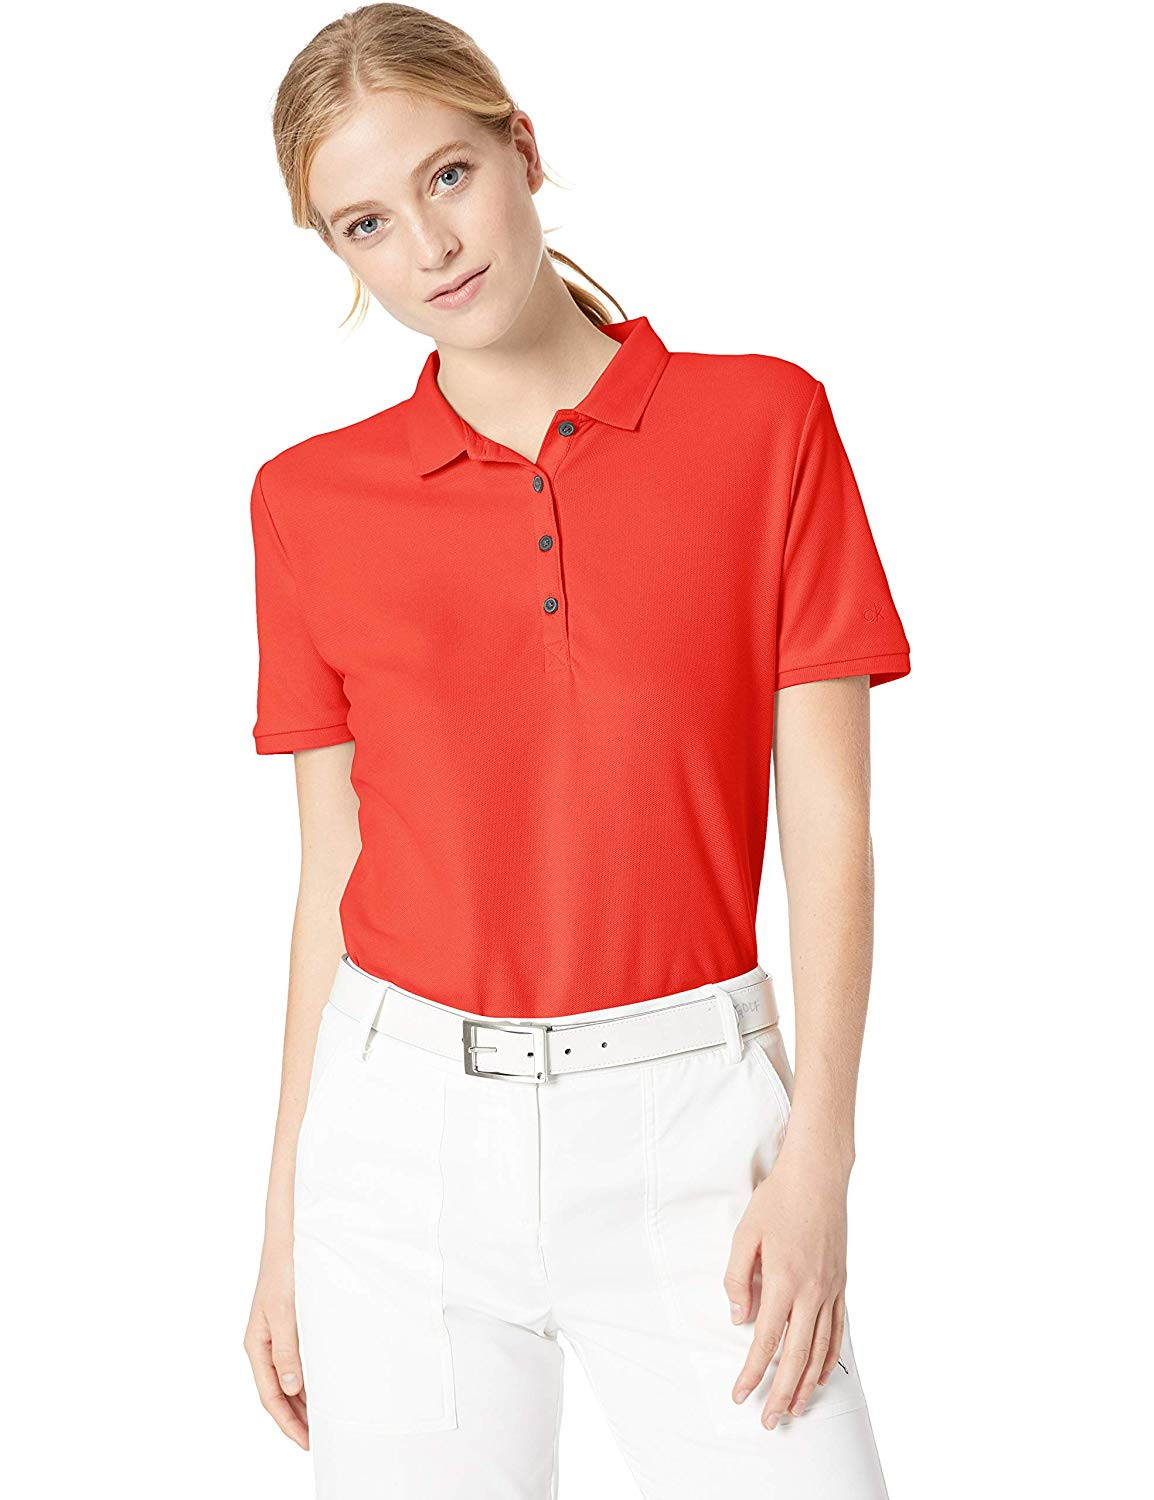 Wholesale high quality custom logo women's stand collar polo t shirt